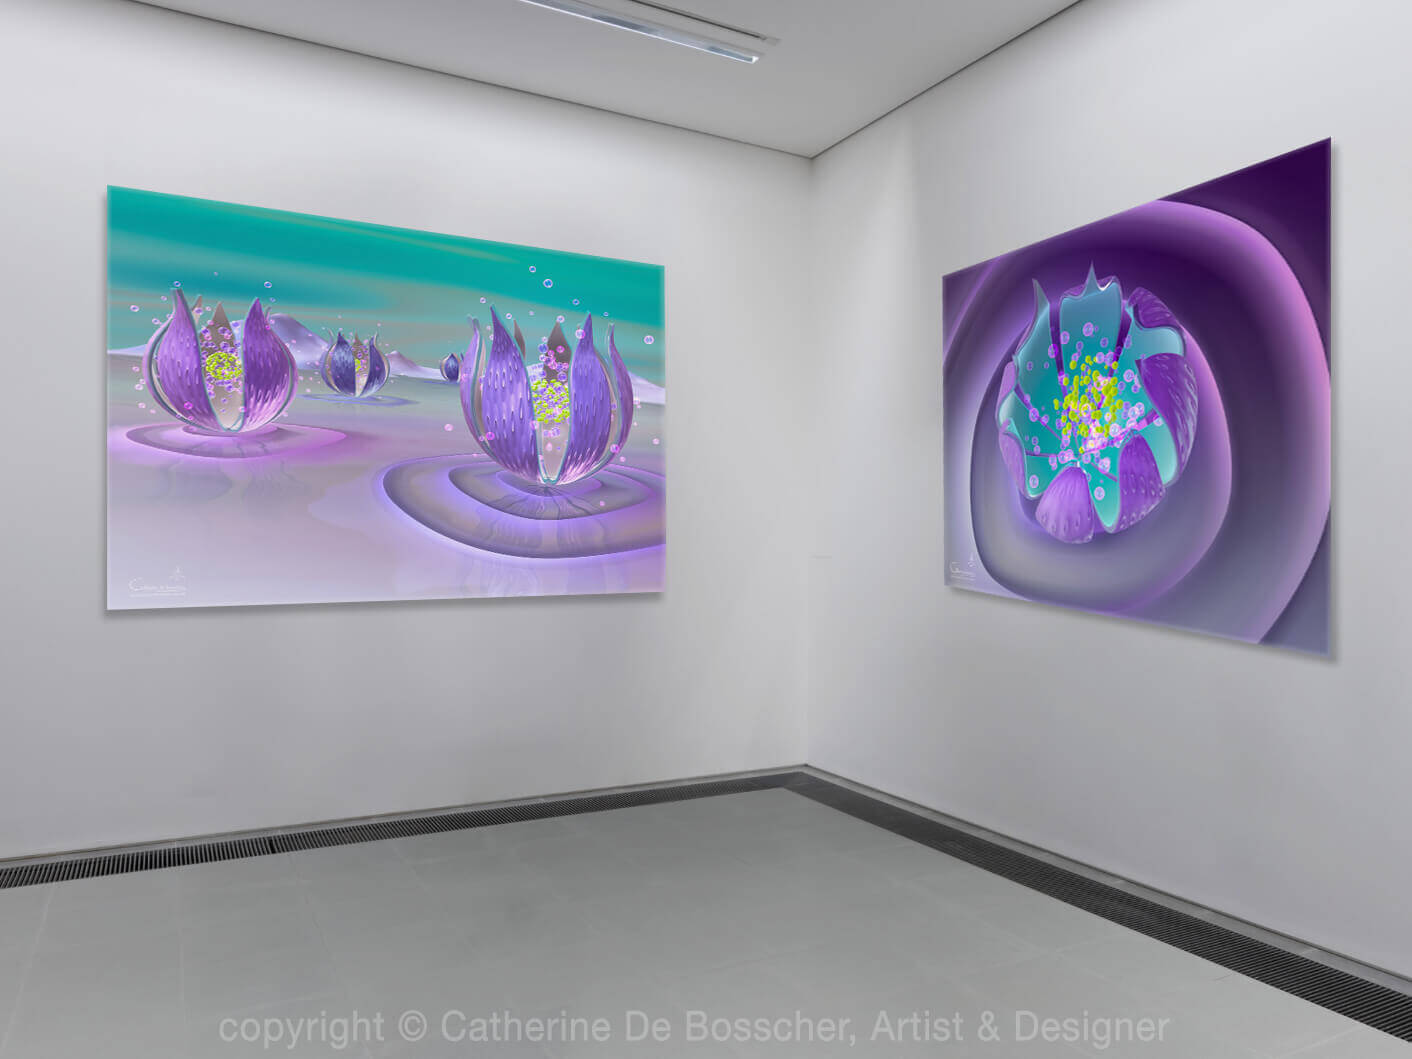 'Purple Capsule I & III' 125x100 cm by Catherine De Bosscher